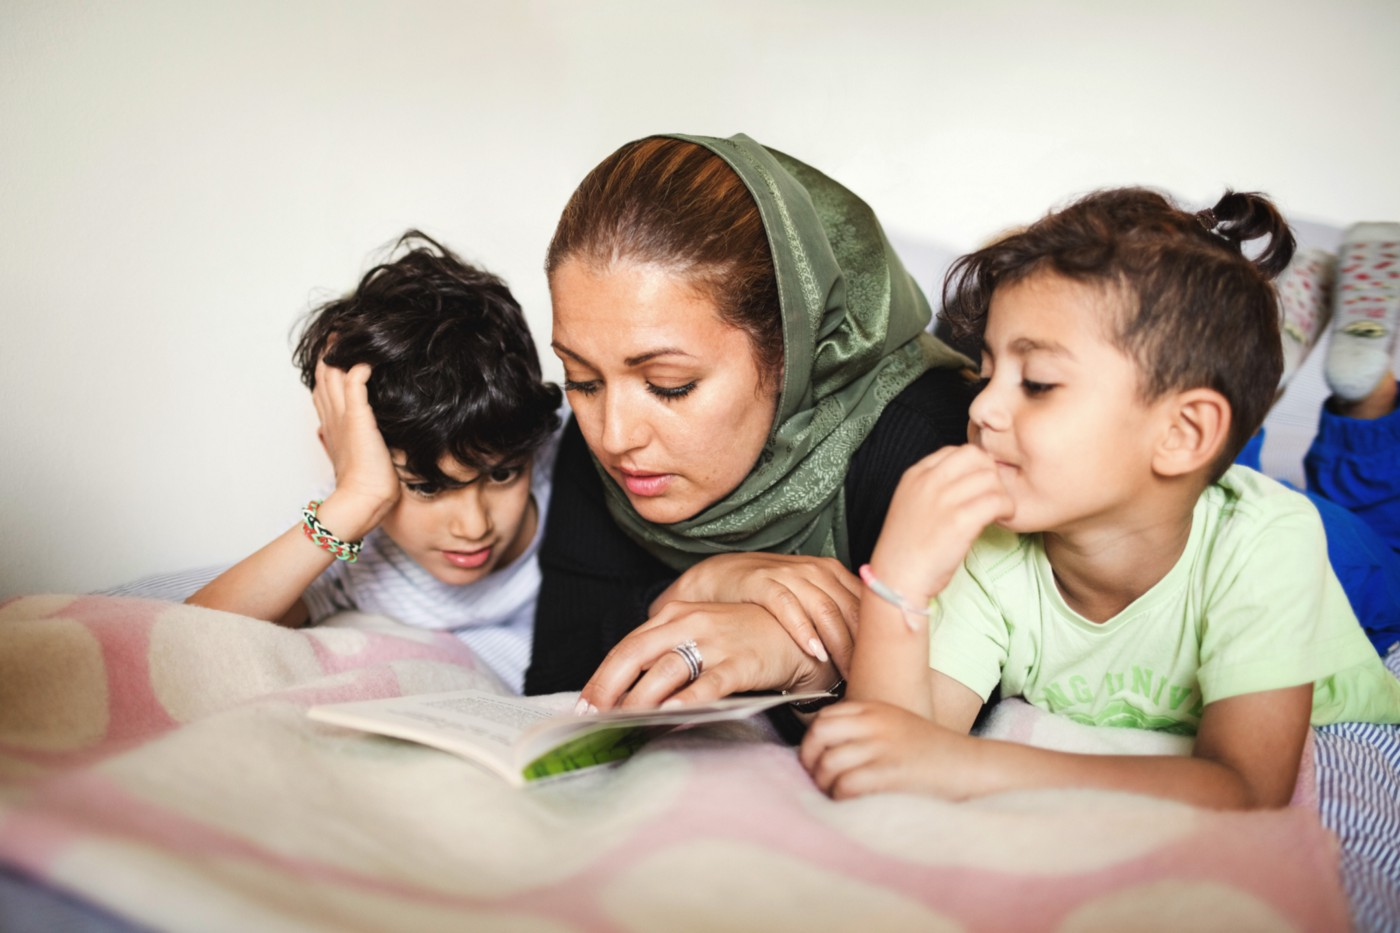 A photo of a Muslim mother reading a book to her two young boys.